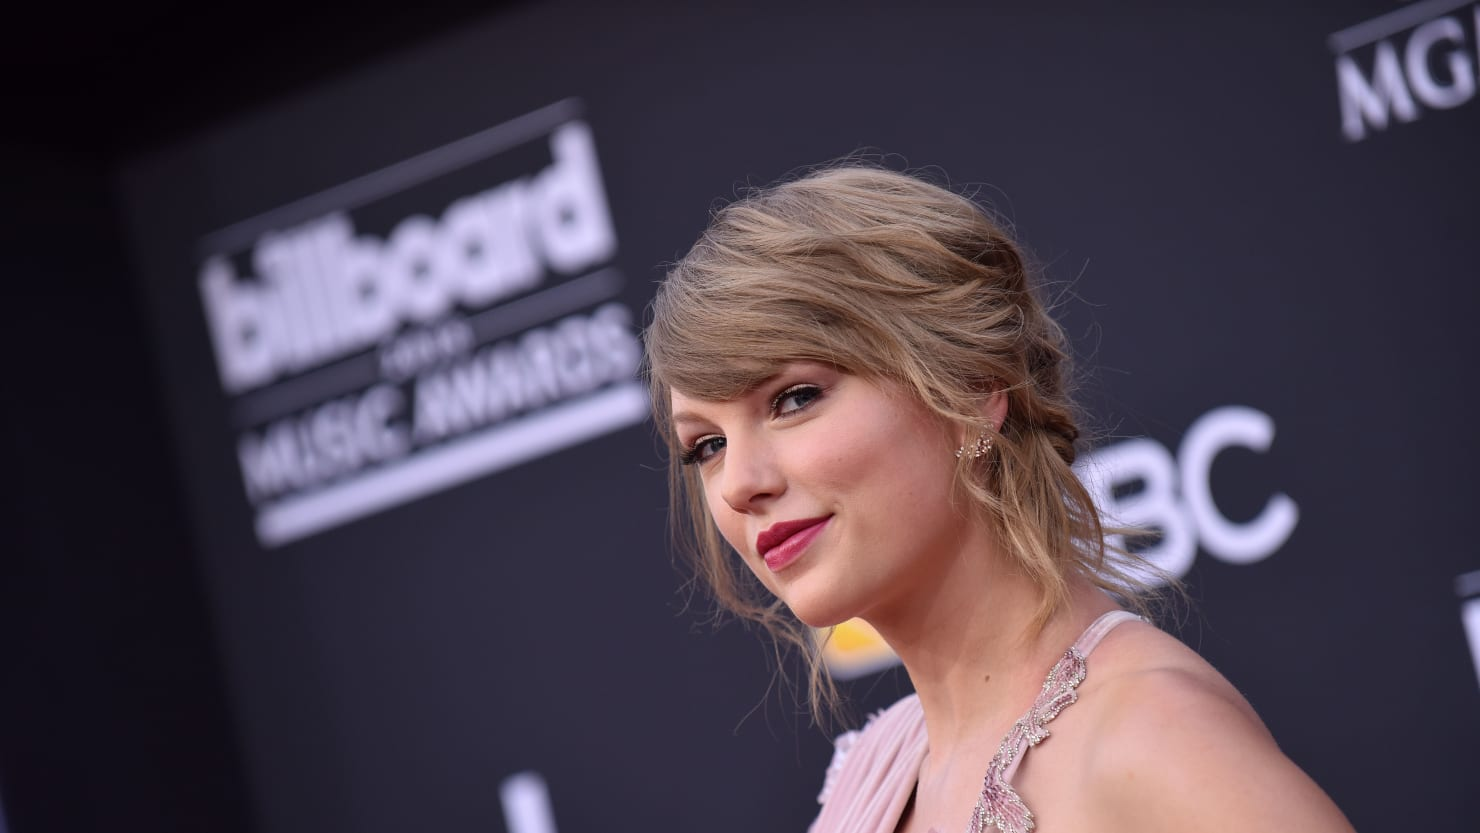 Taylor Swift Urges Fans To Vote Against 'Fear Based Extremism'